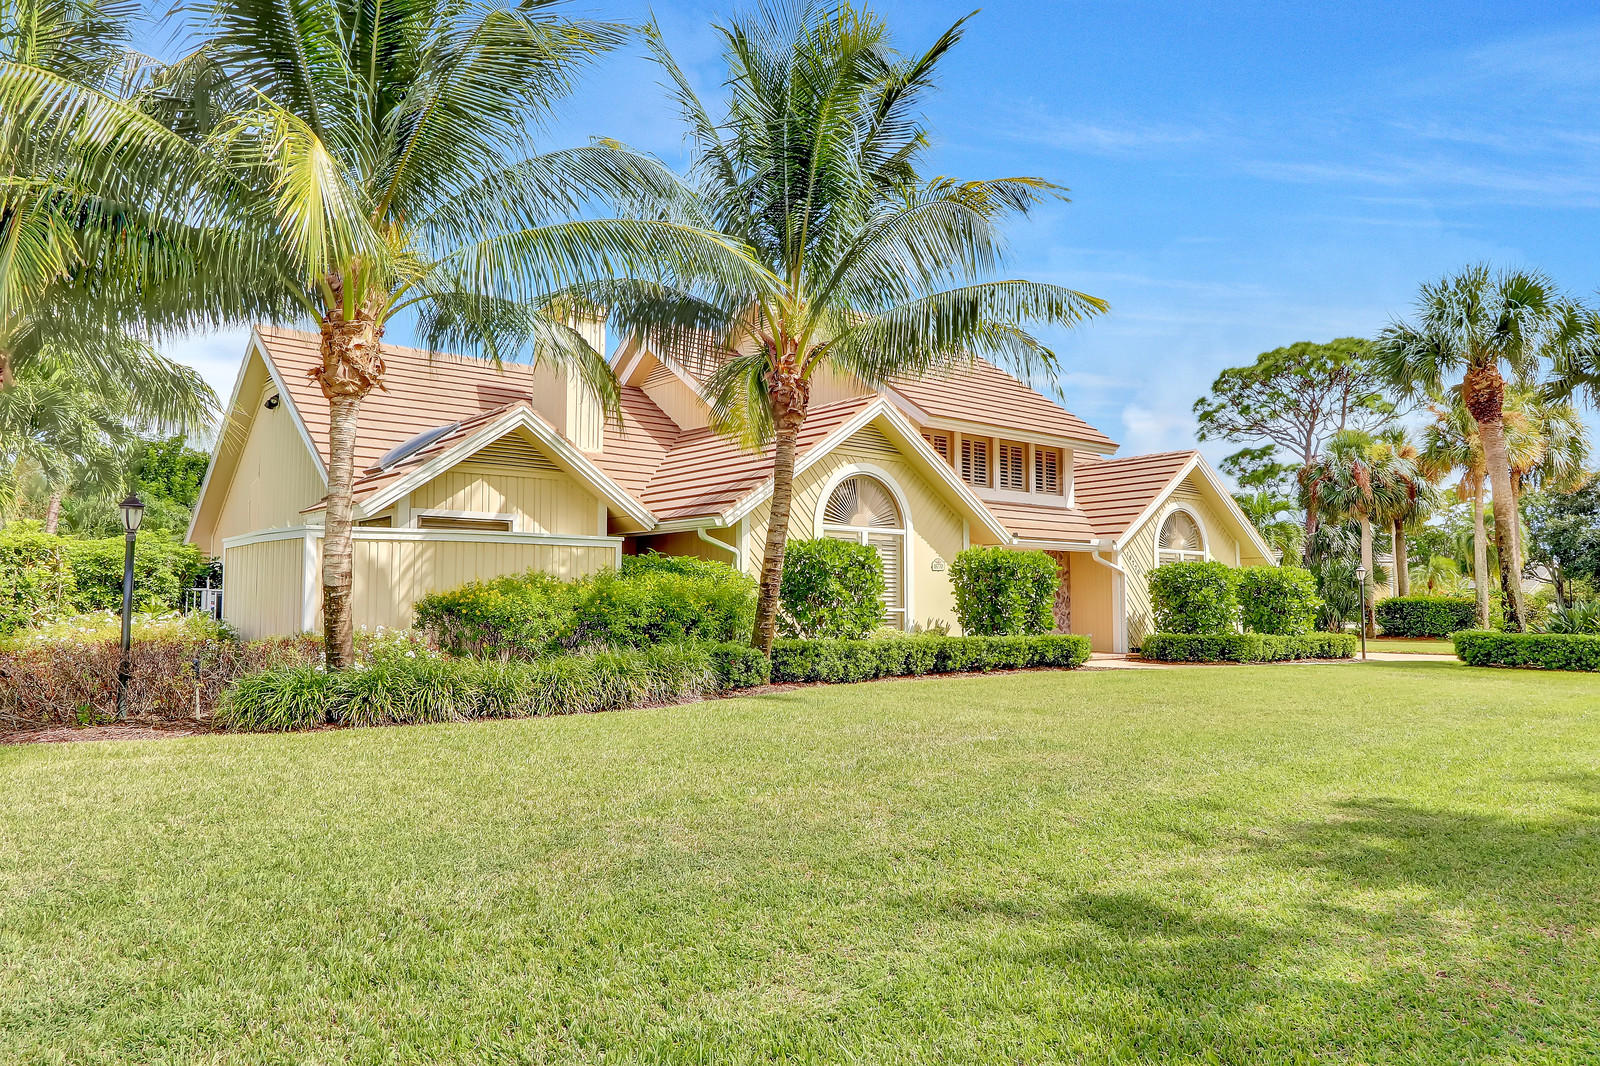 One of Tequesta 4 Bedroom Homes for Sale at 18770 SE River Ridge Road